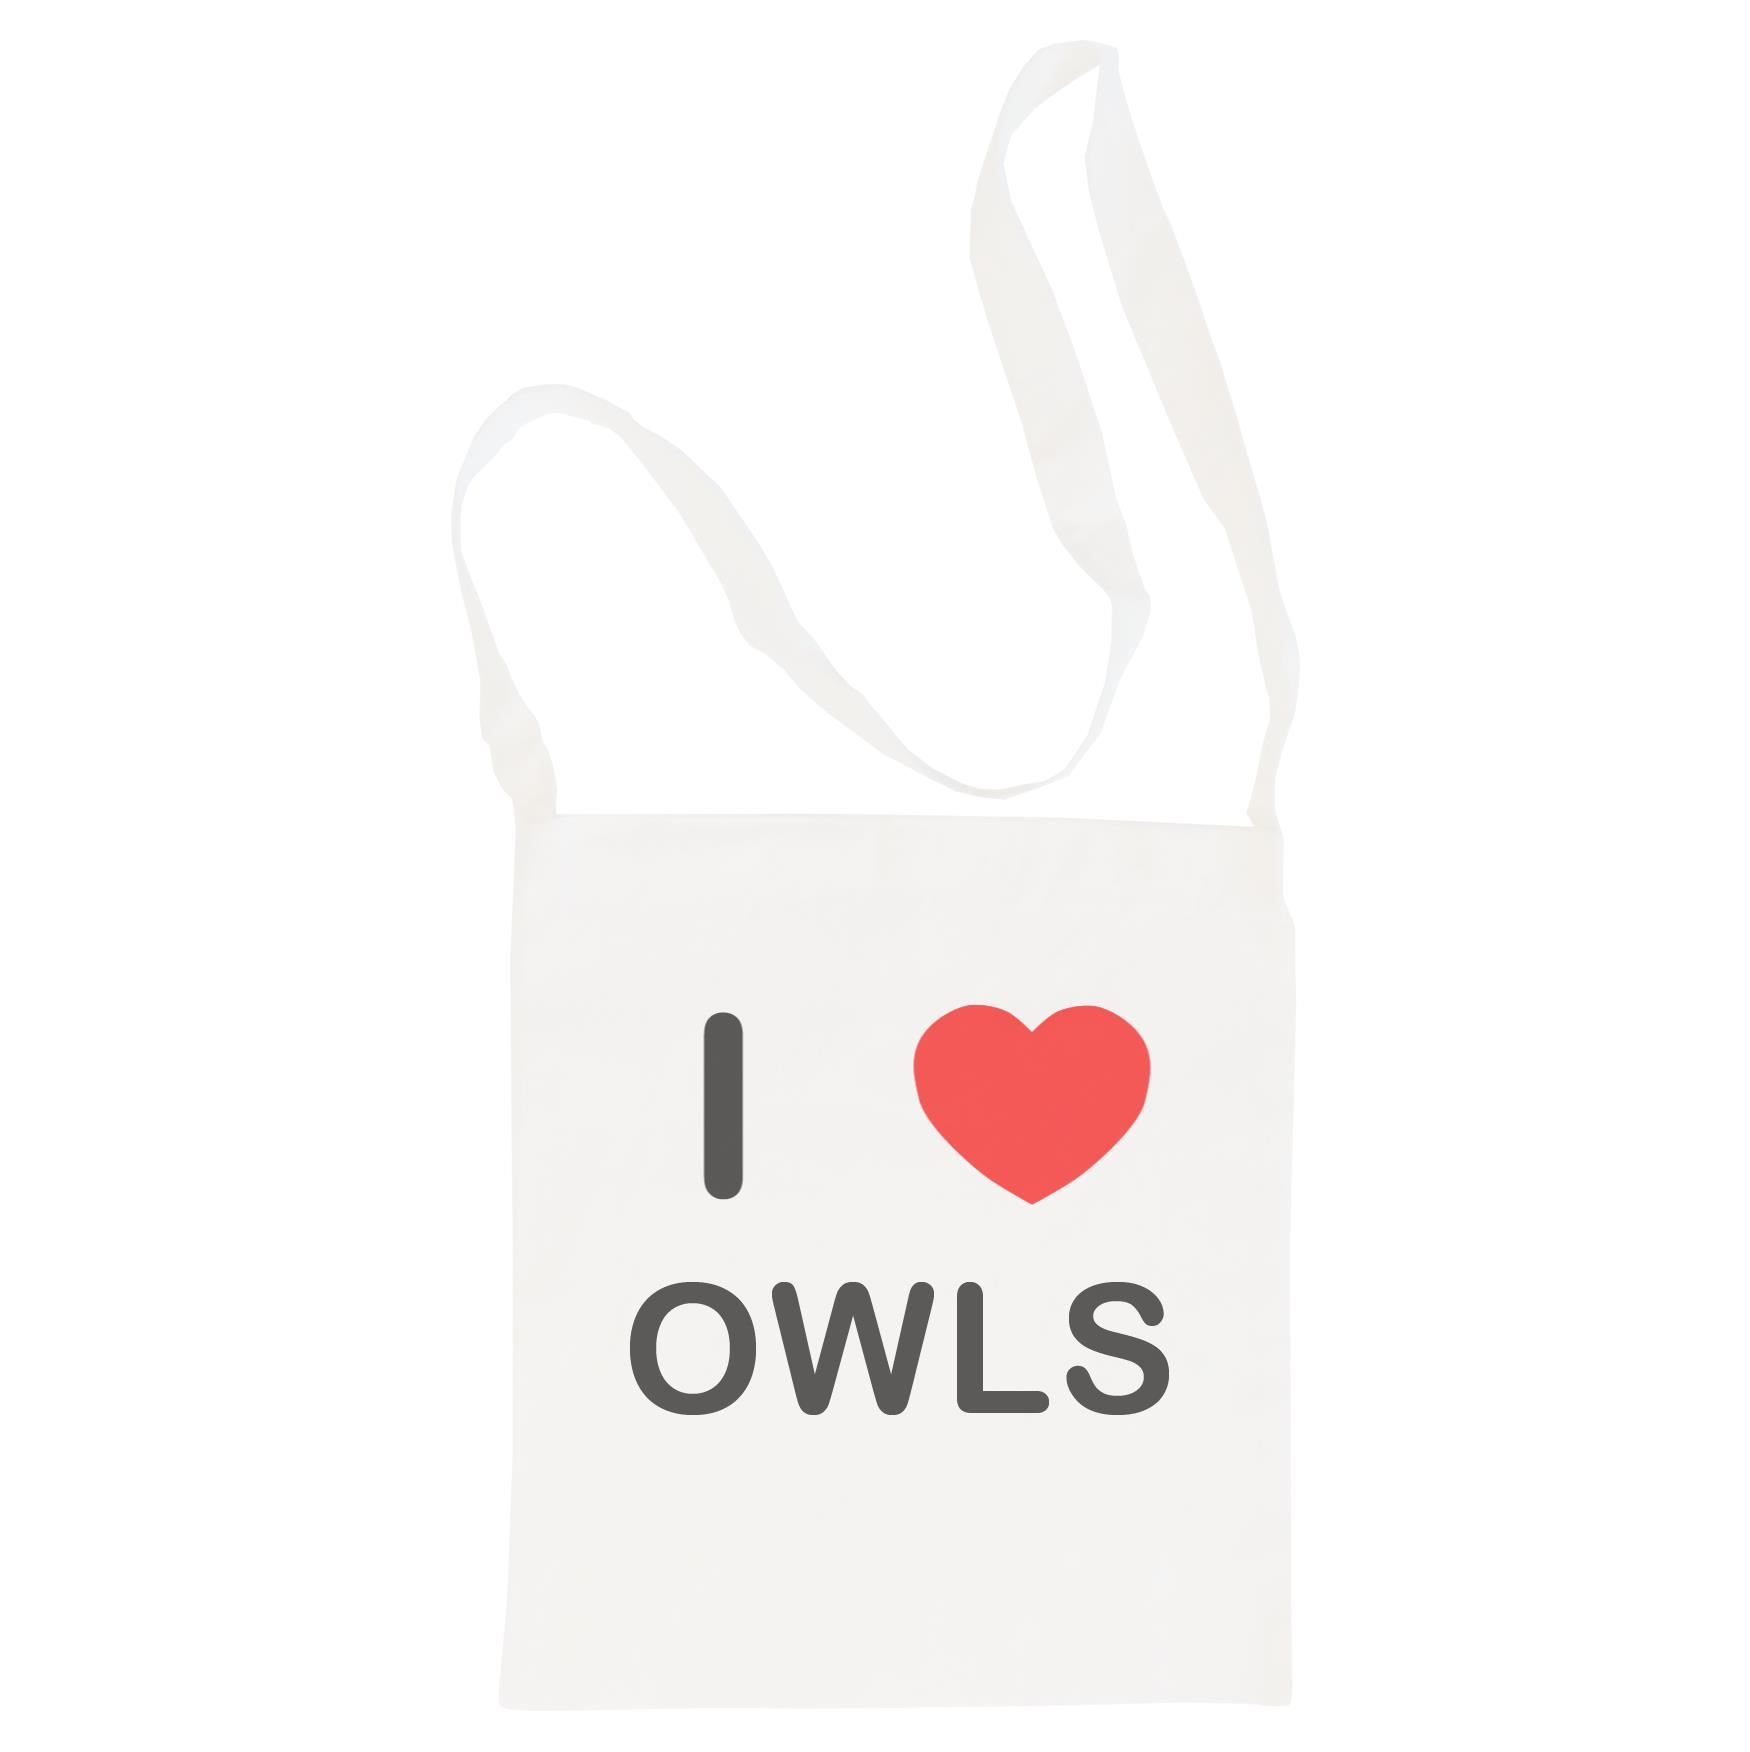 I Love Owls - Cotton Bag | Size choice Tote, Shopper or Sling